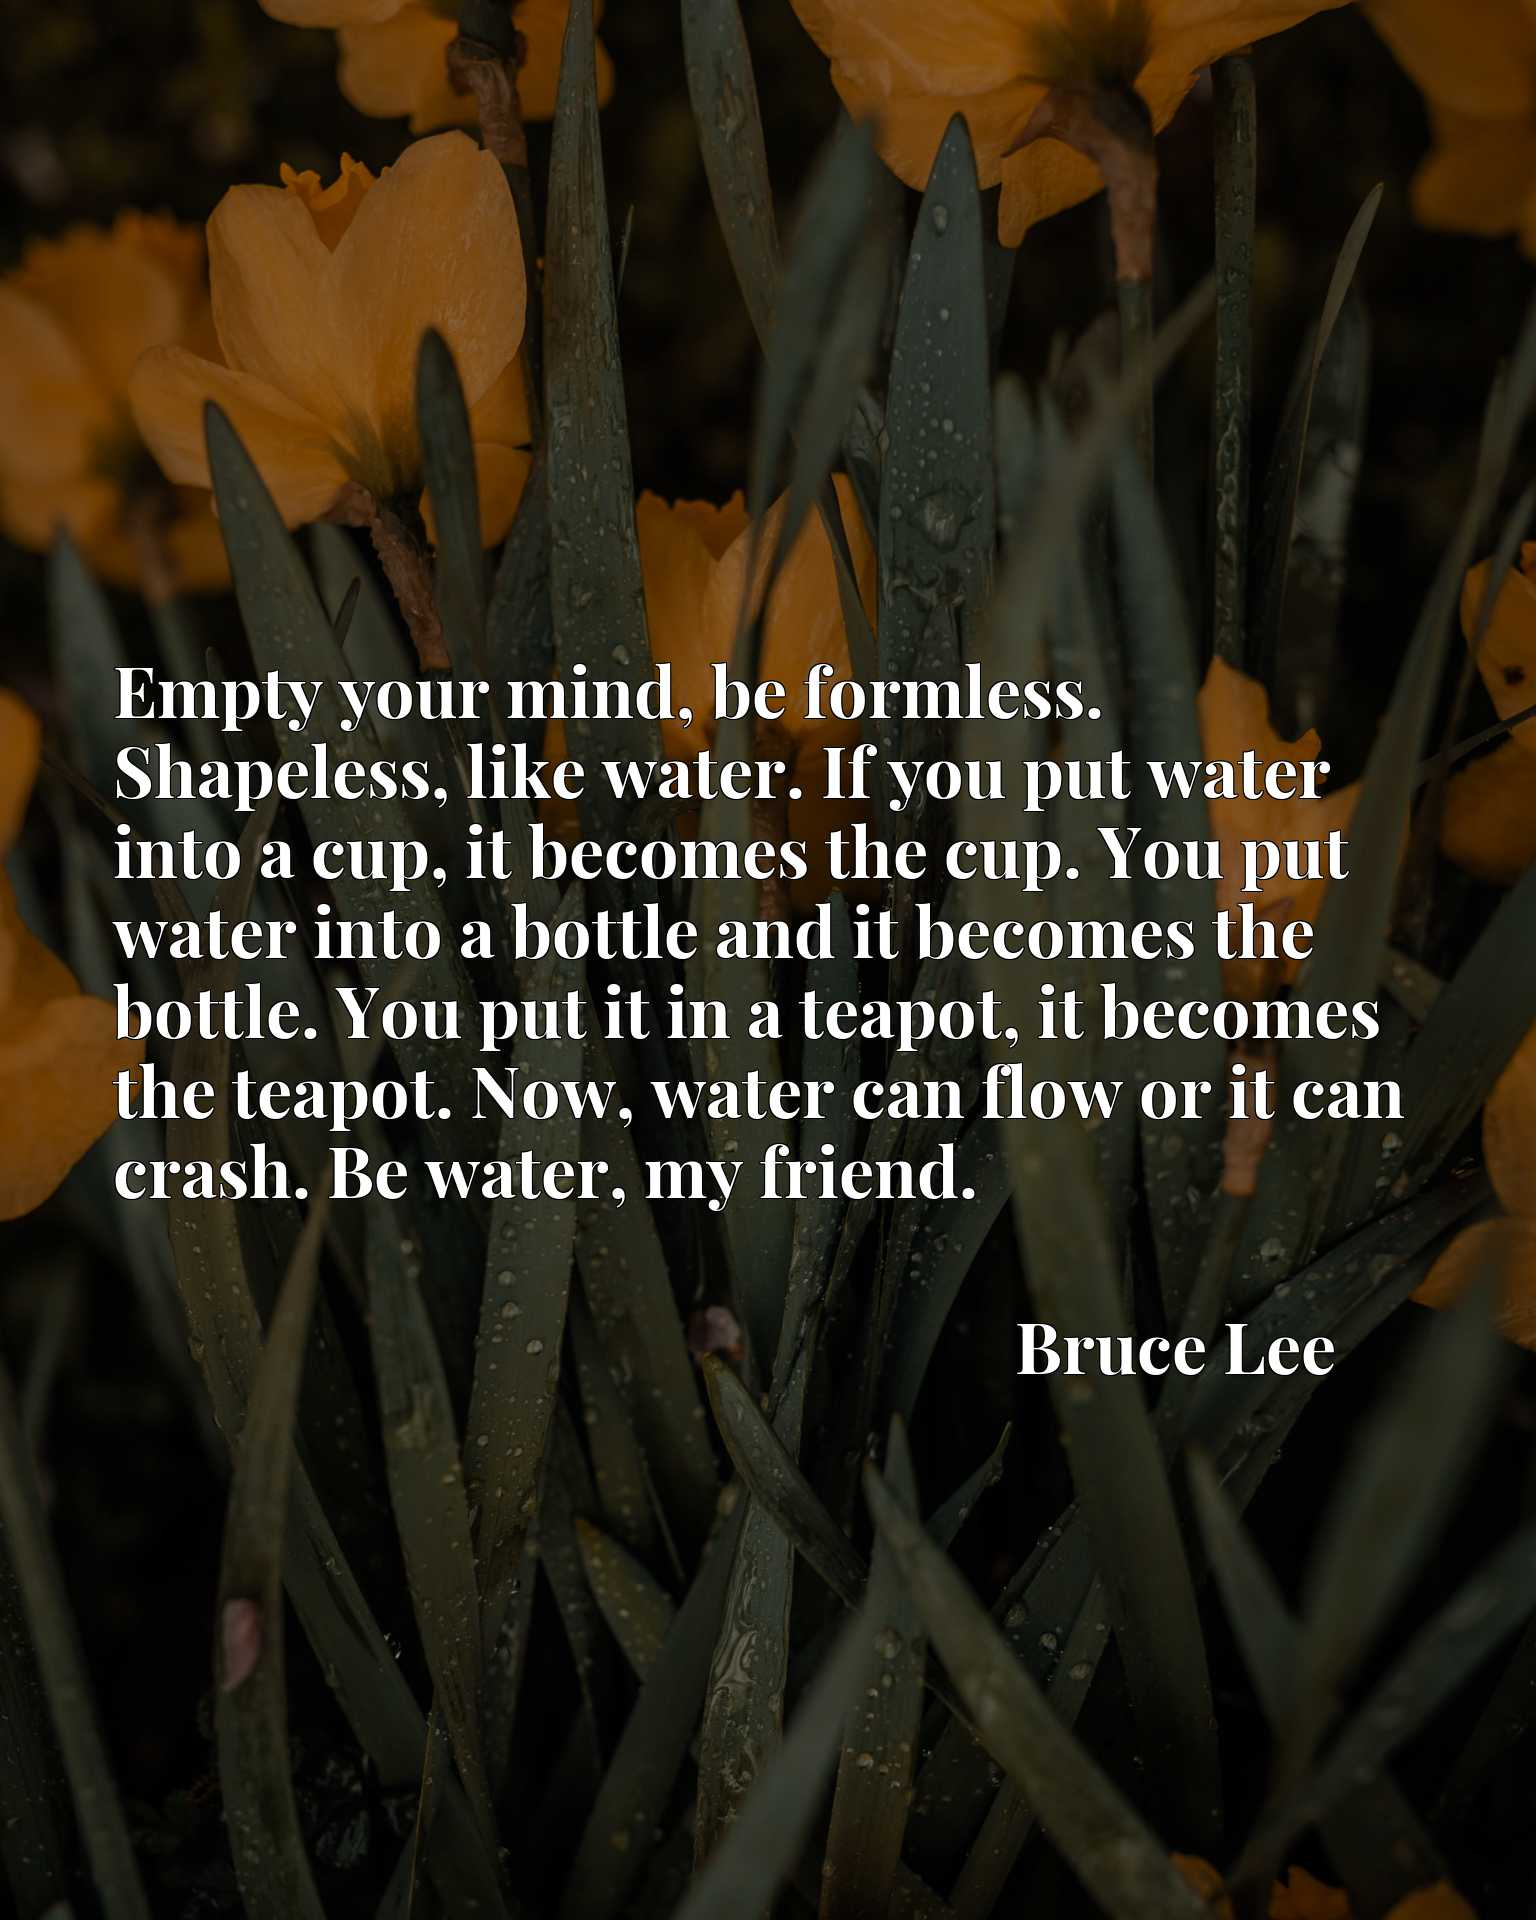 Empty your mind, be formless. Shapeless, like water. If you put water into a cup, it becomes the cup. You put water into a bottle and it becomes the bottle. You put it in a teapot, it becomes the teapot. Now, water can flow or it can crash. Be water, my friend.